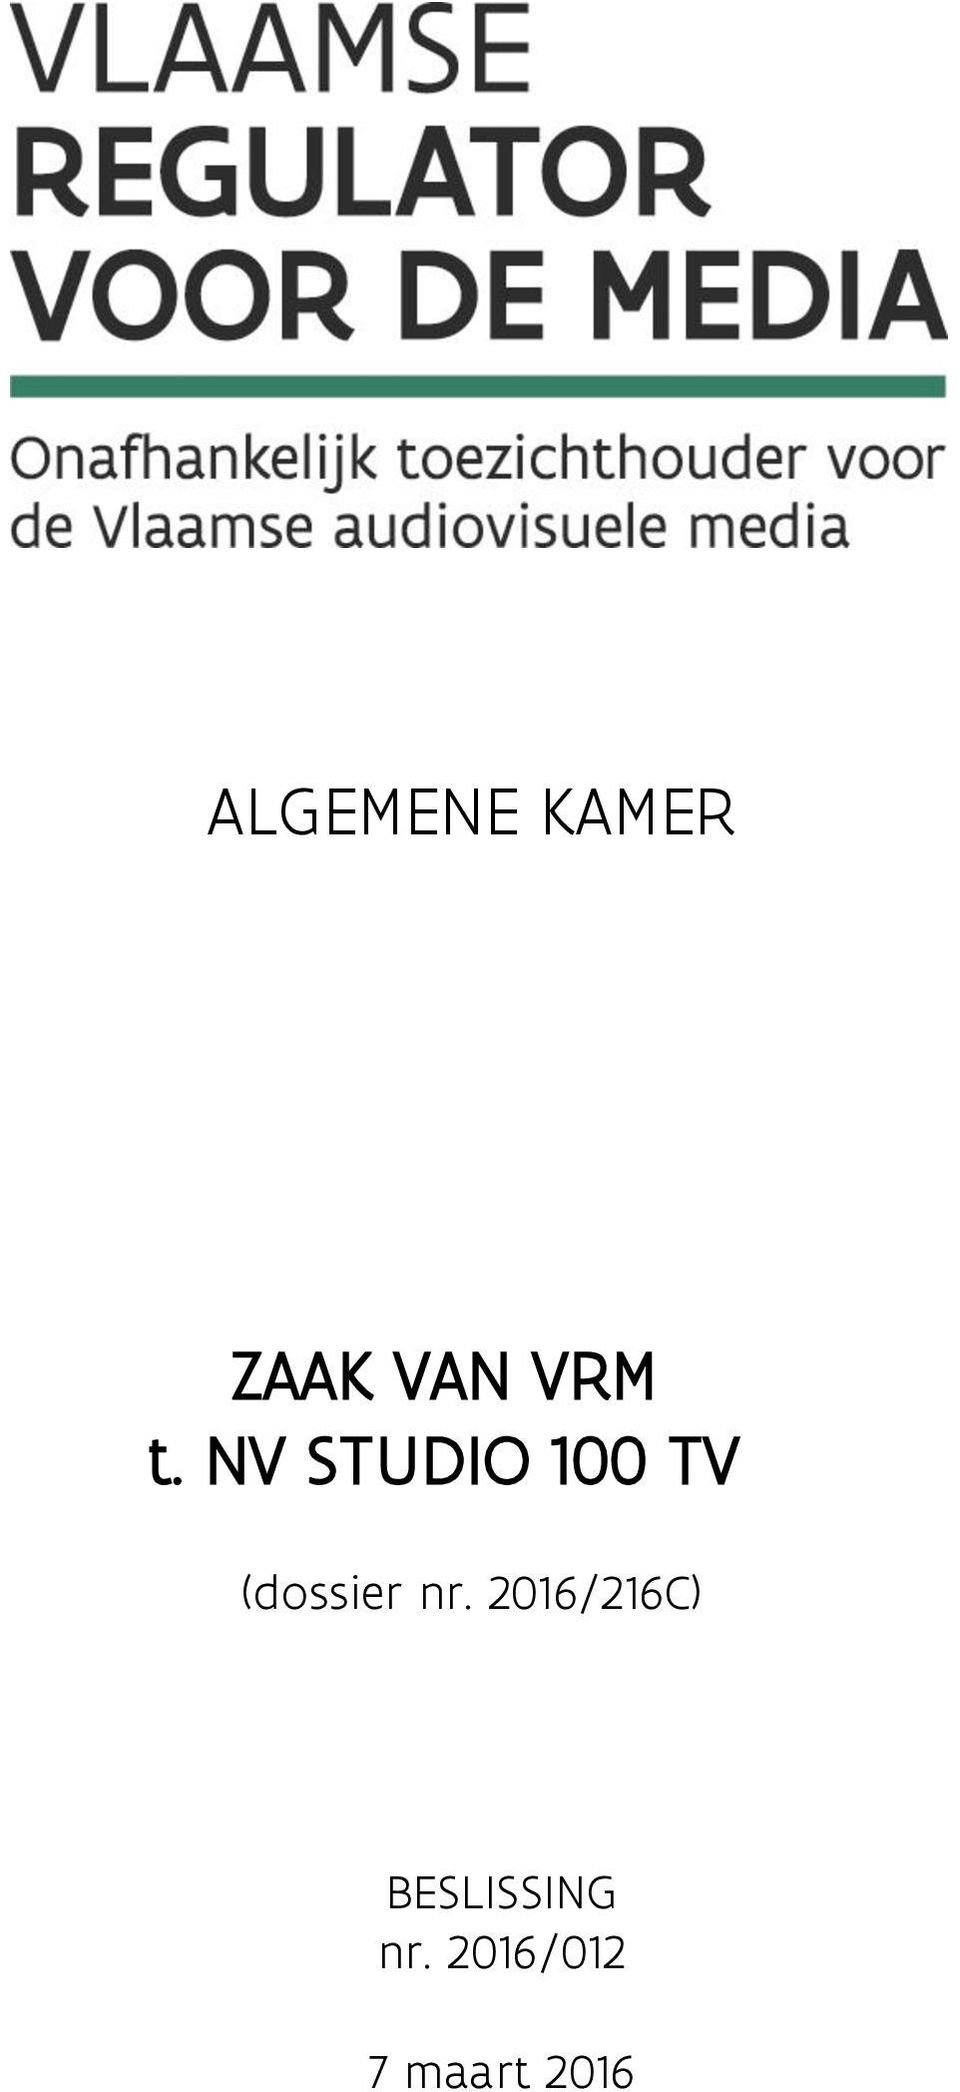 NV STUDIO 100 TV (dossier